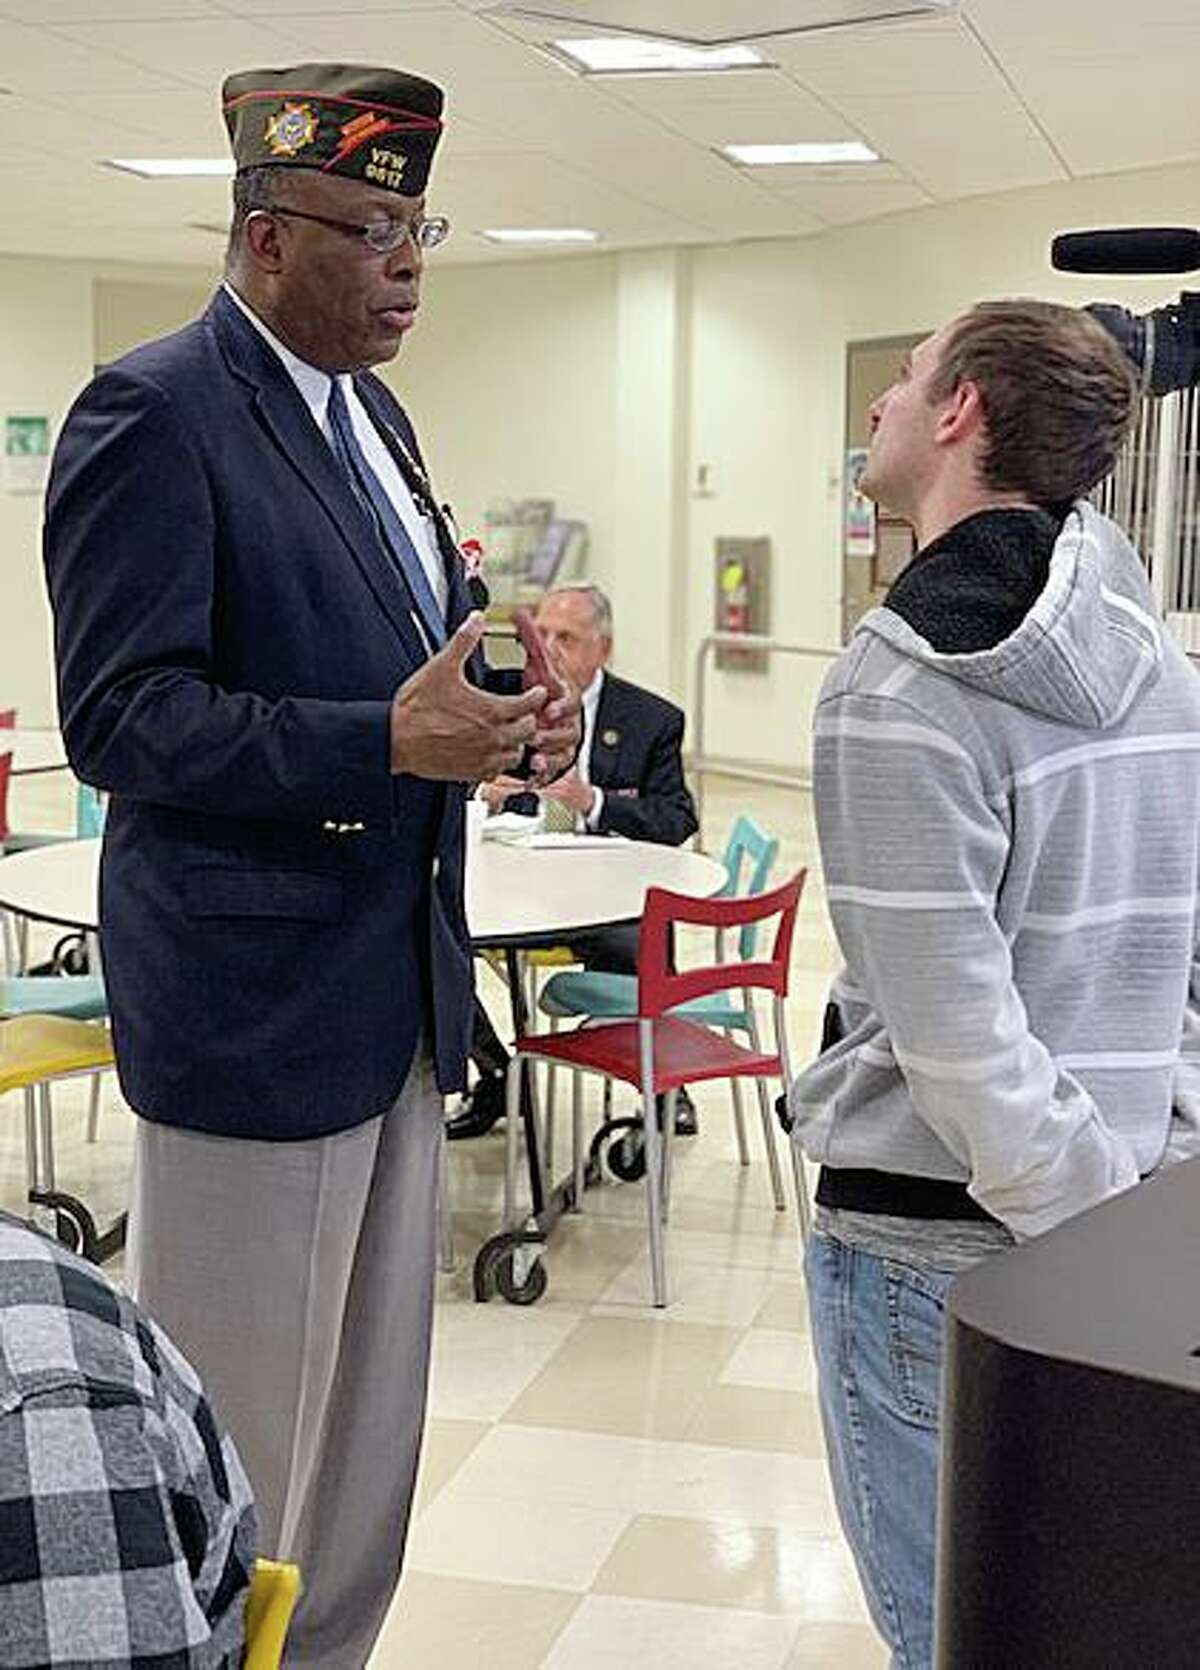 Veteran Archie Elam speaks with a camerman from News 12 at the Academy of Information Technology & Engineering's 12th annual Veterans Day Breakfast on Nov. 7, 2019 in Stamford, Conn.